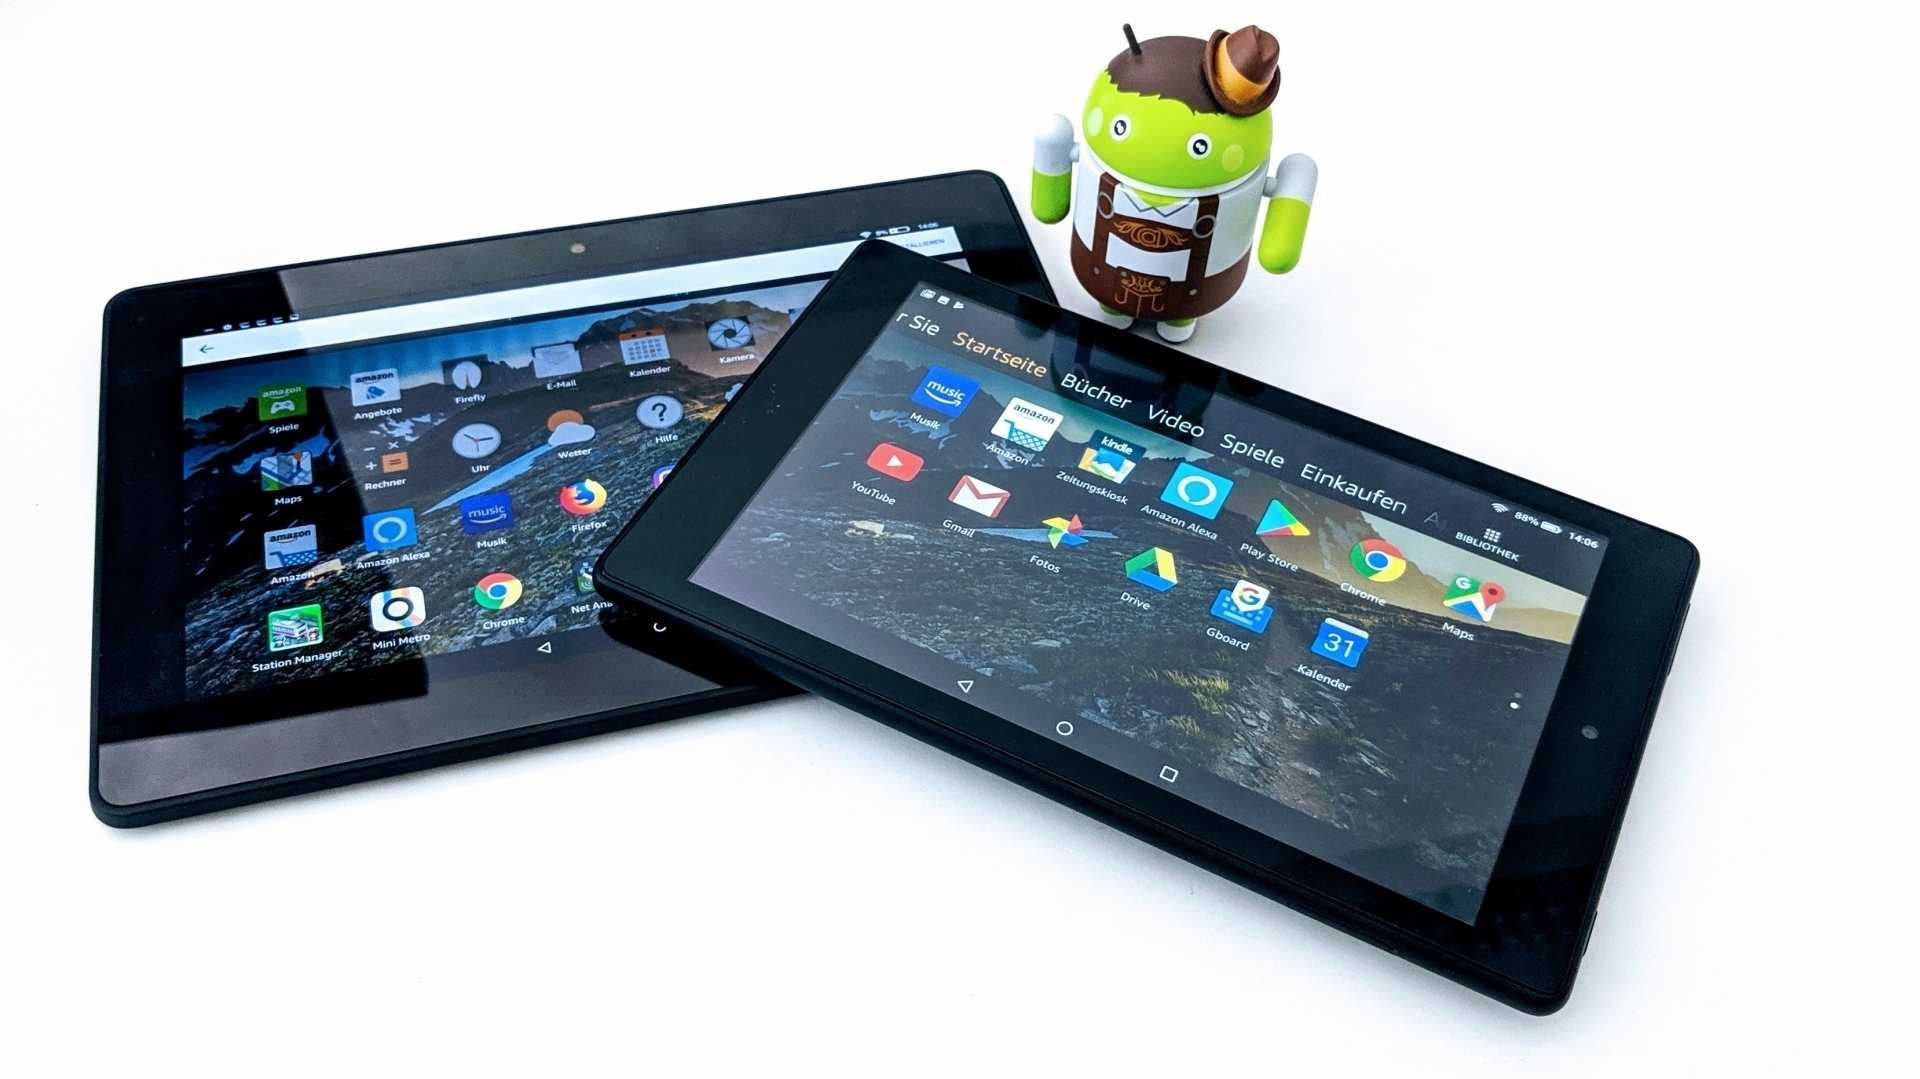 Amazons Fire Tablets: Google Play Store und Android-Apps installieren